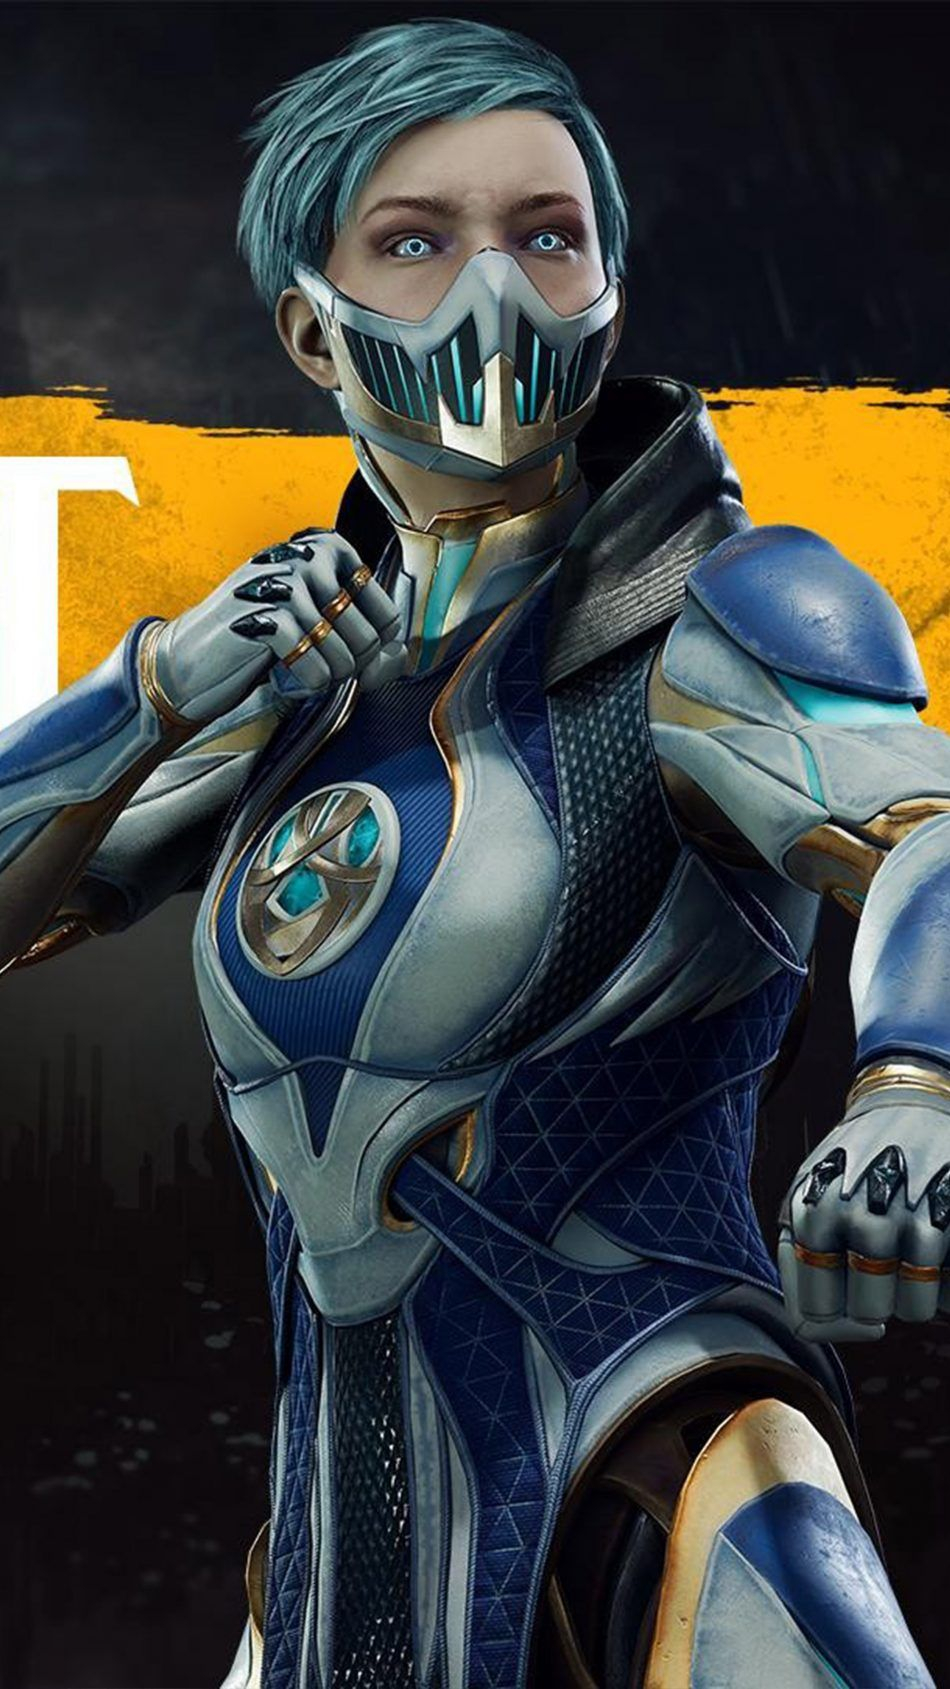 Frost Mortal Kombat 11 4K Ultra HD Mobile Wallpaper